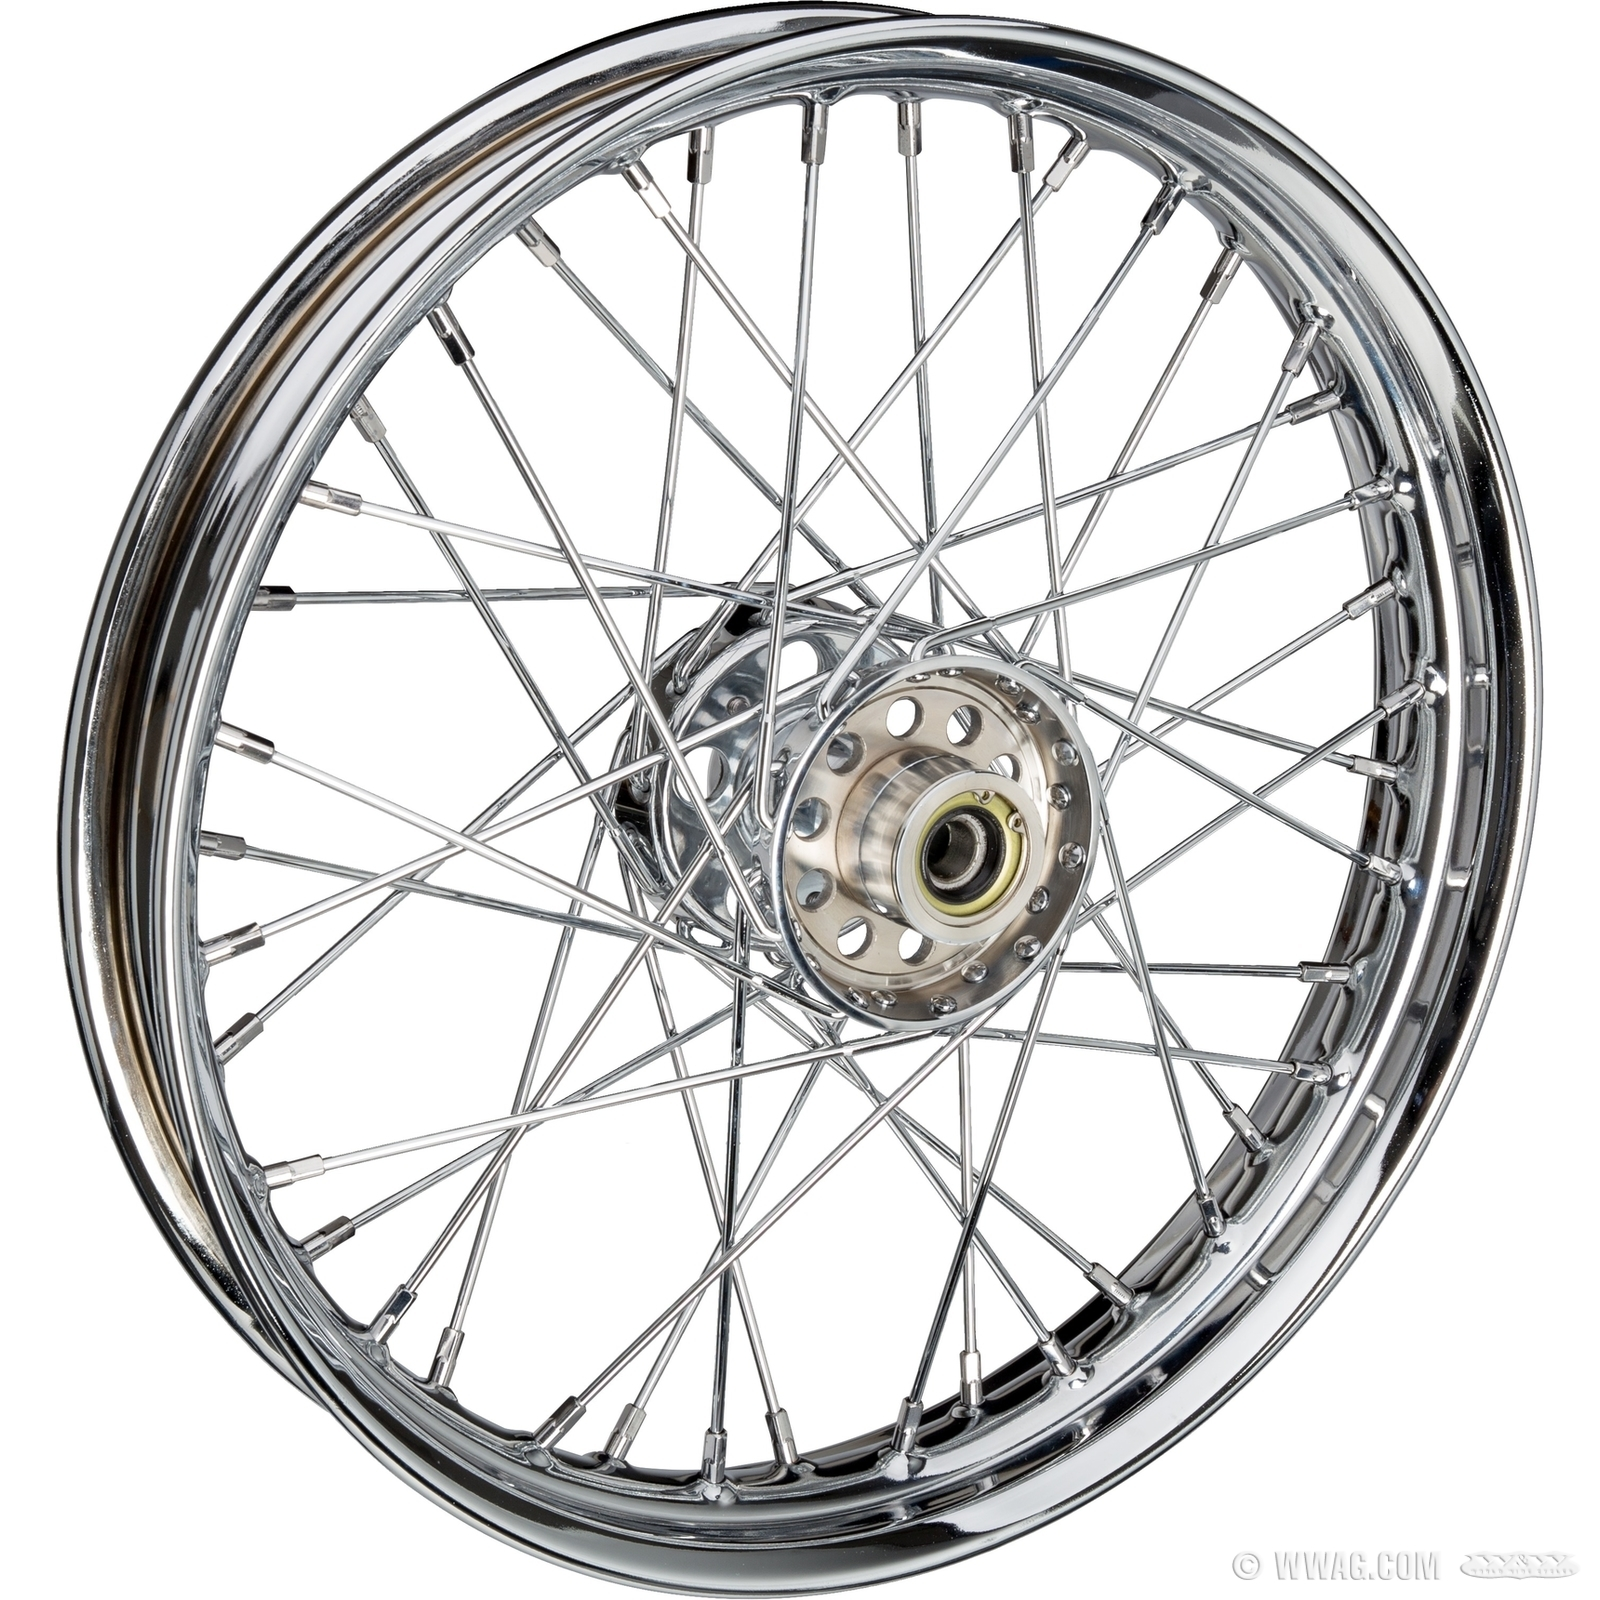 W&W Cycles - Wheels > Wheels with Tapered Roller Star Hub and ...